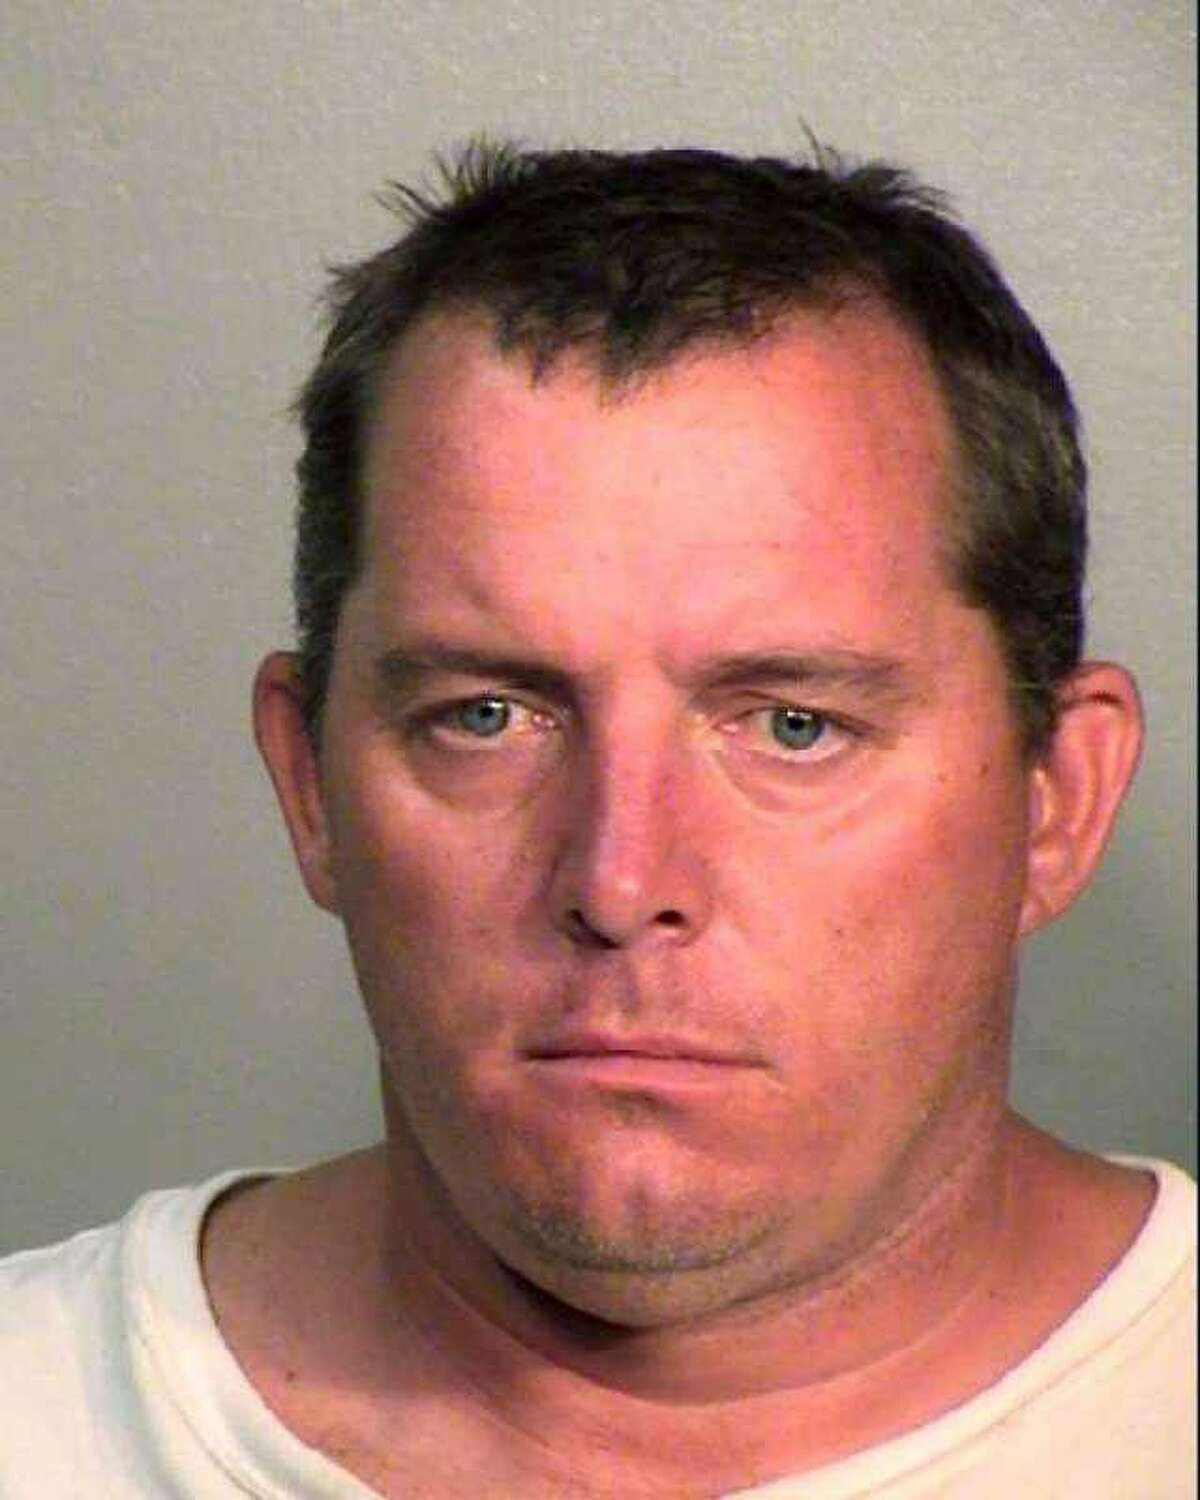 Barry Uhr, 45, was convicted earlier this year of recklessly striking his 18-month-old daughter and assaulting his then-girlfriend in two separate incidents of family violence.